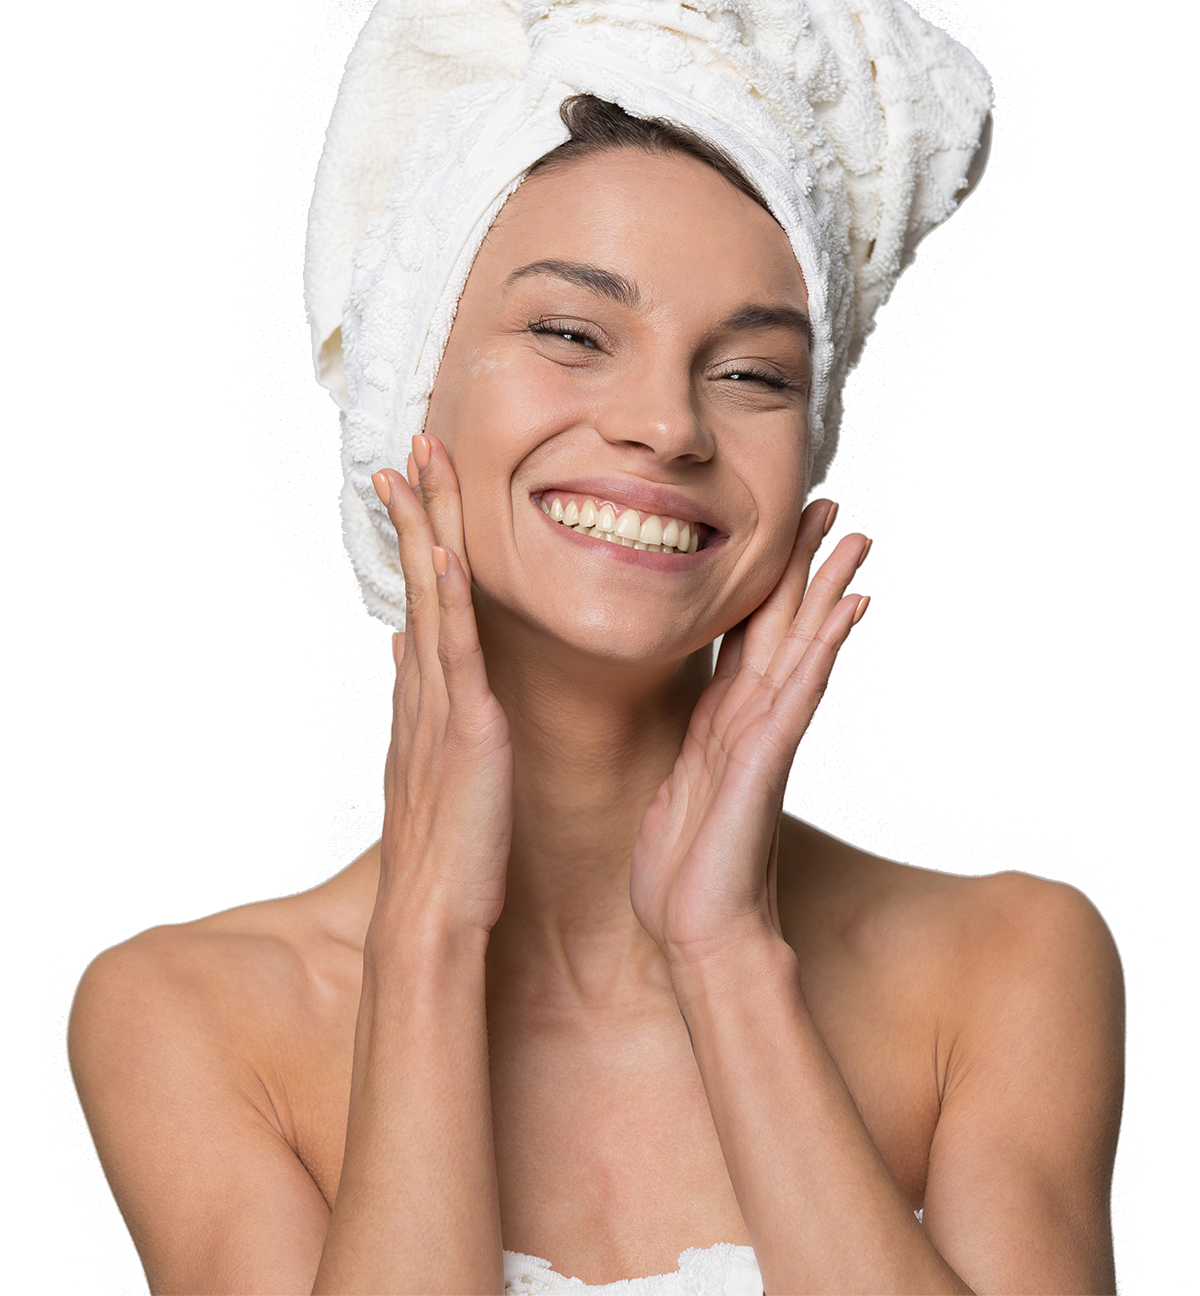 Woman with towel on head patting face with hands